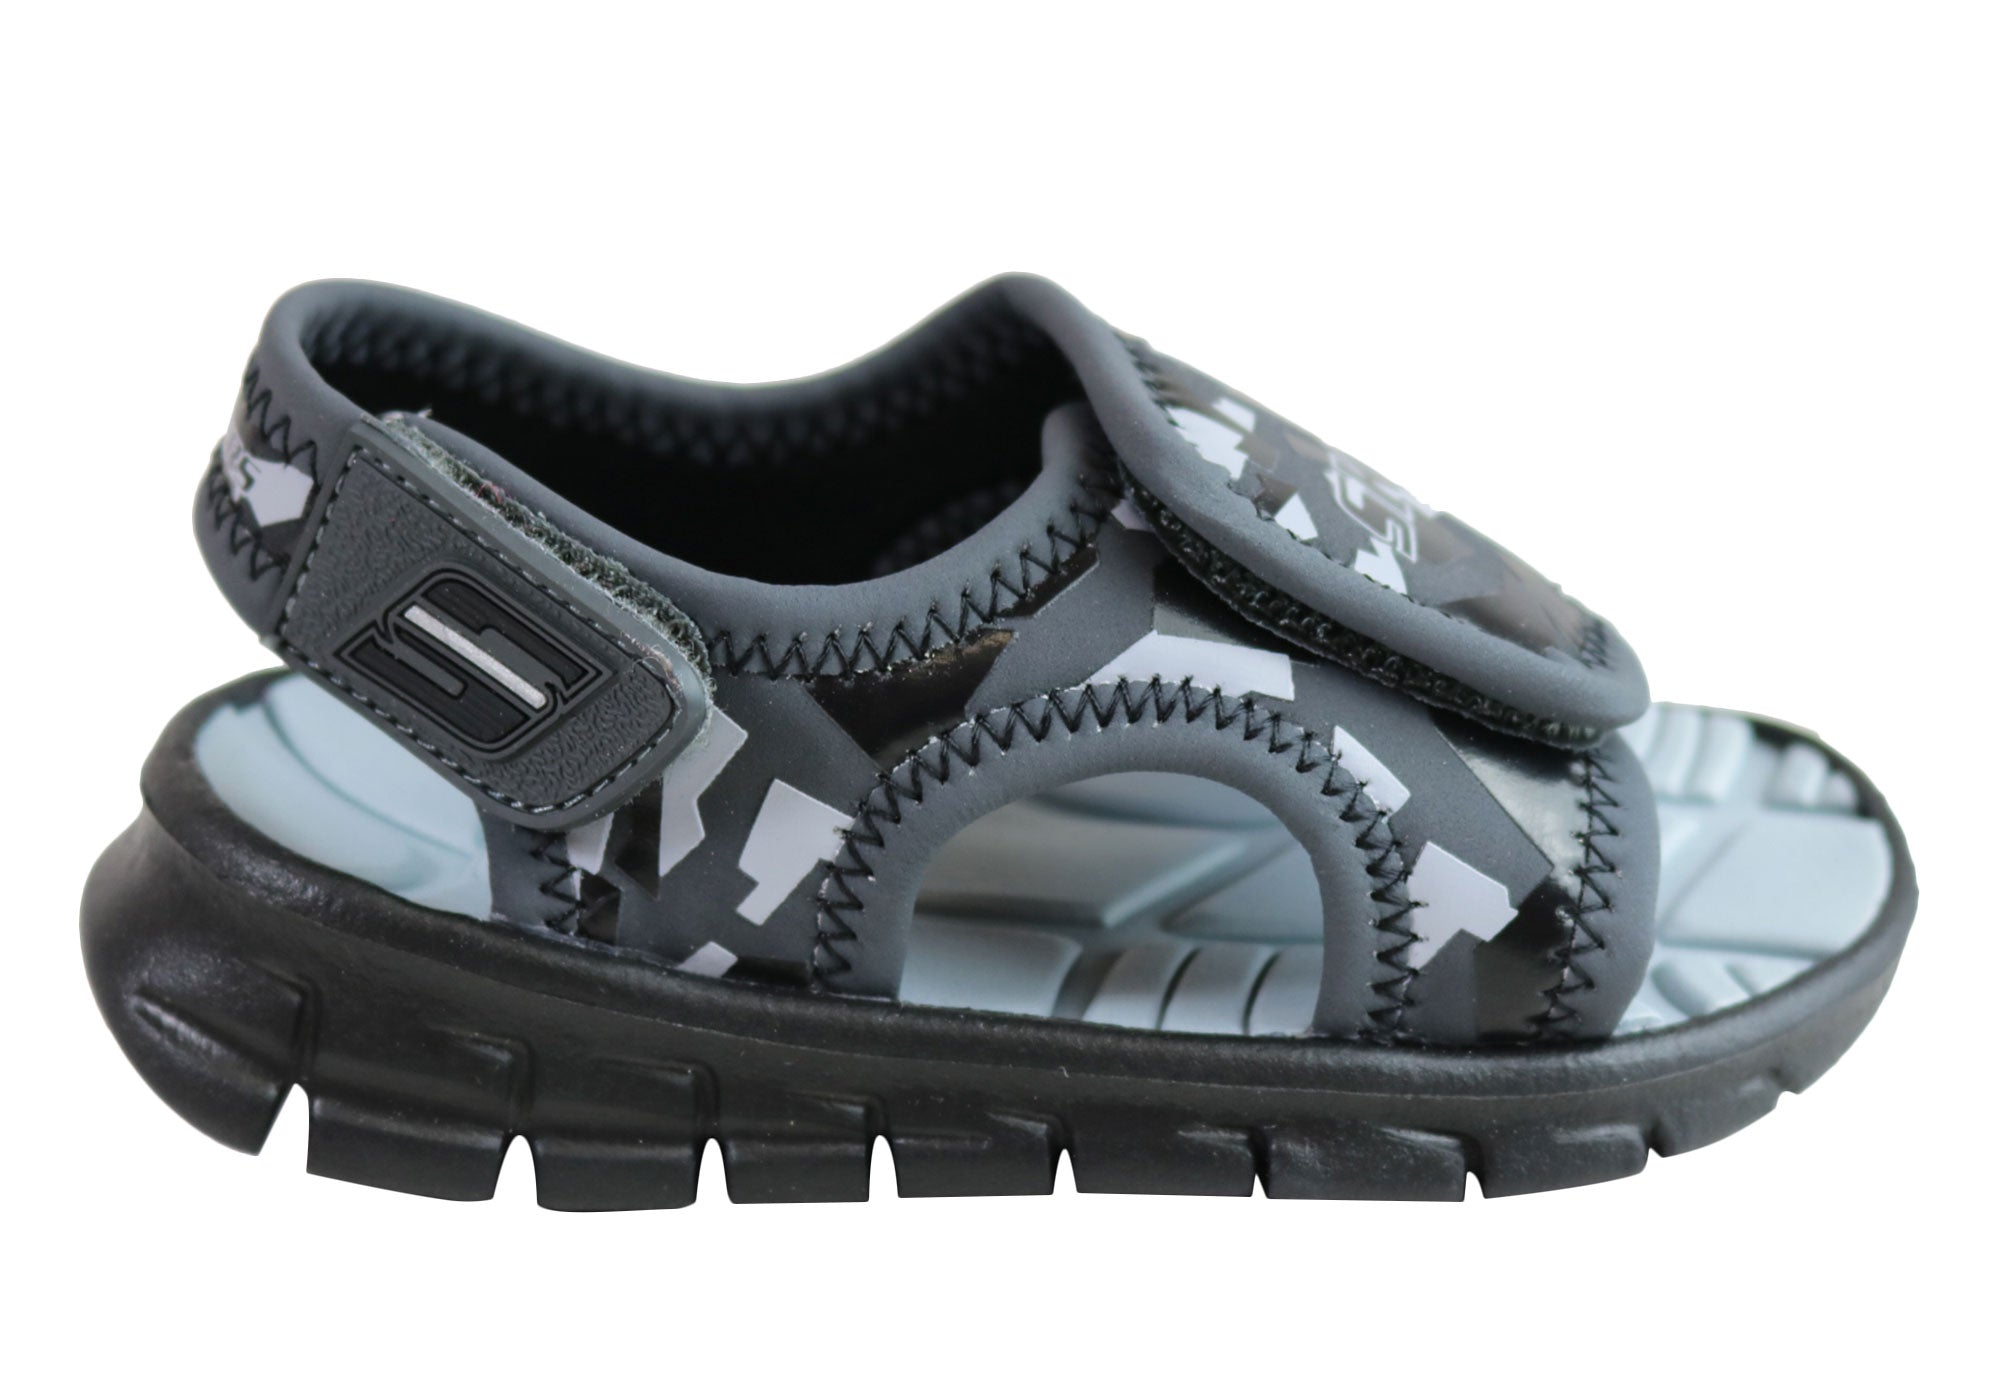 Skechers Infant Toddler Kids Cushioned Synergize Adjustable